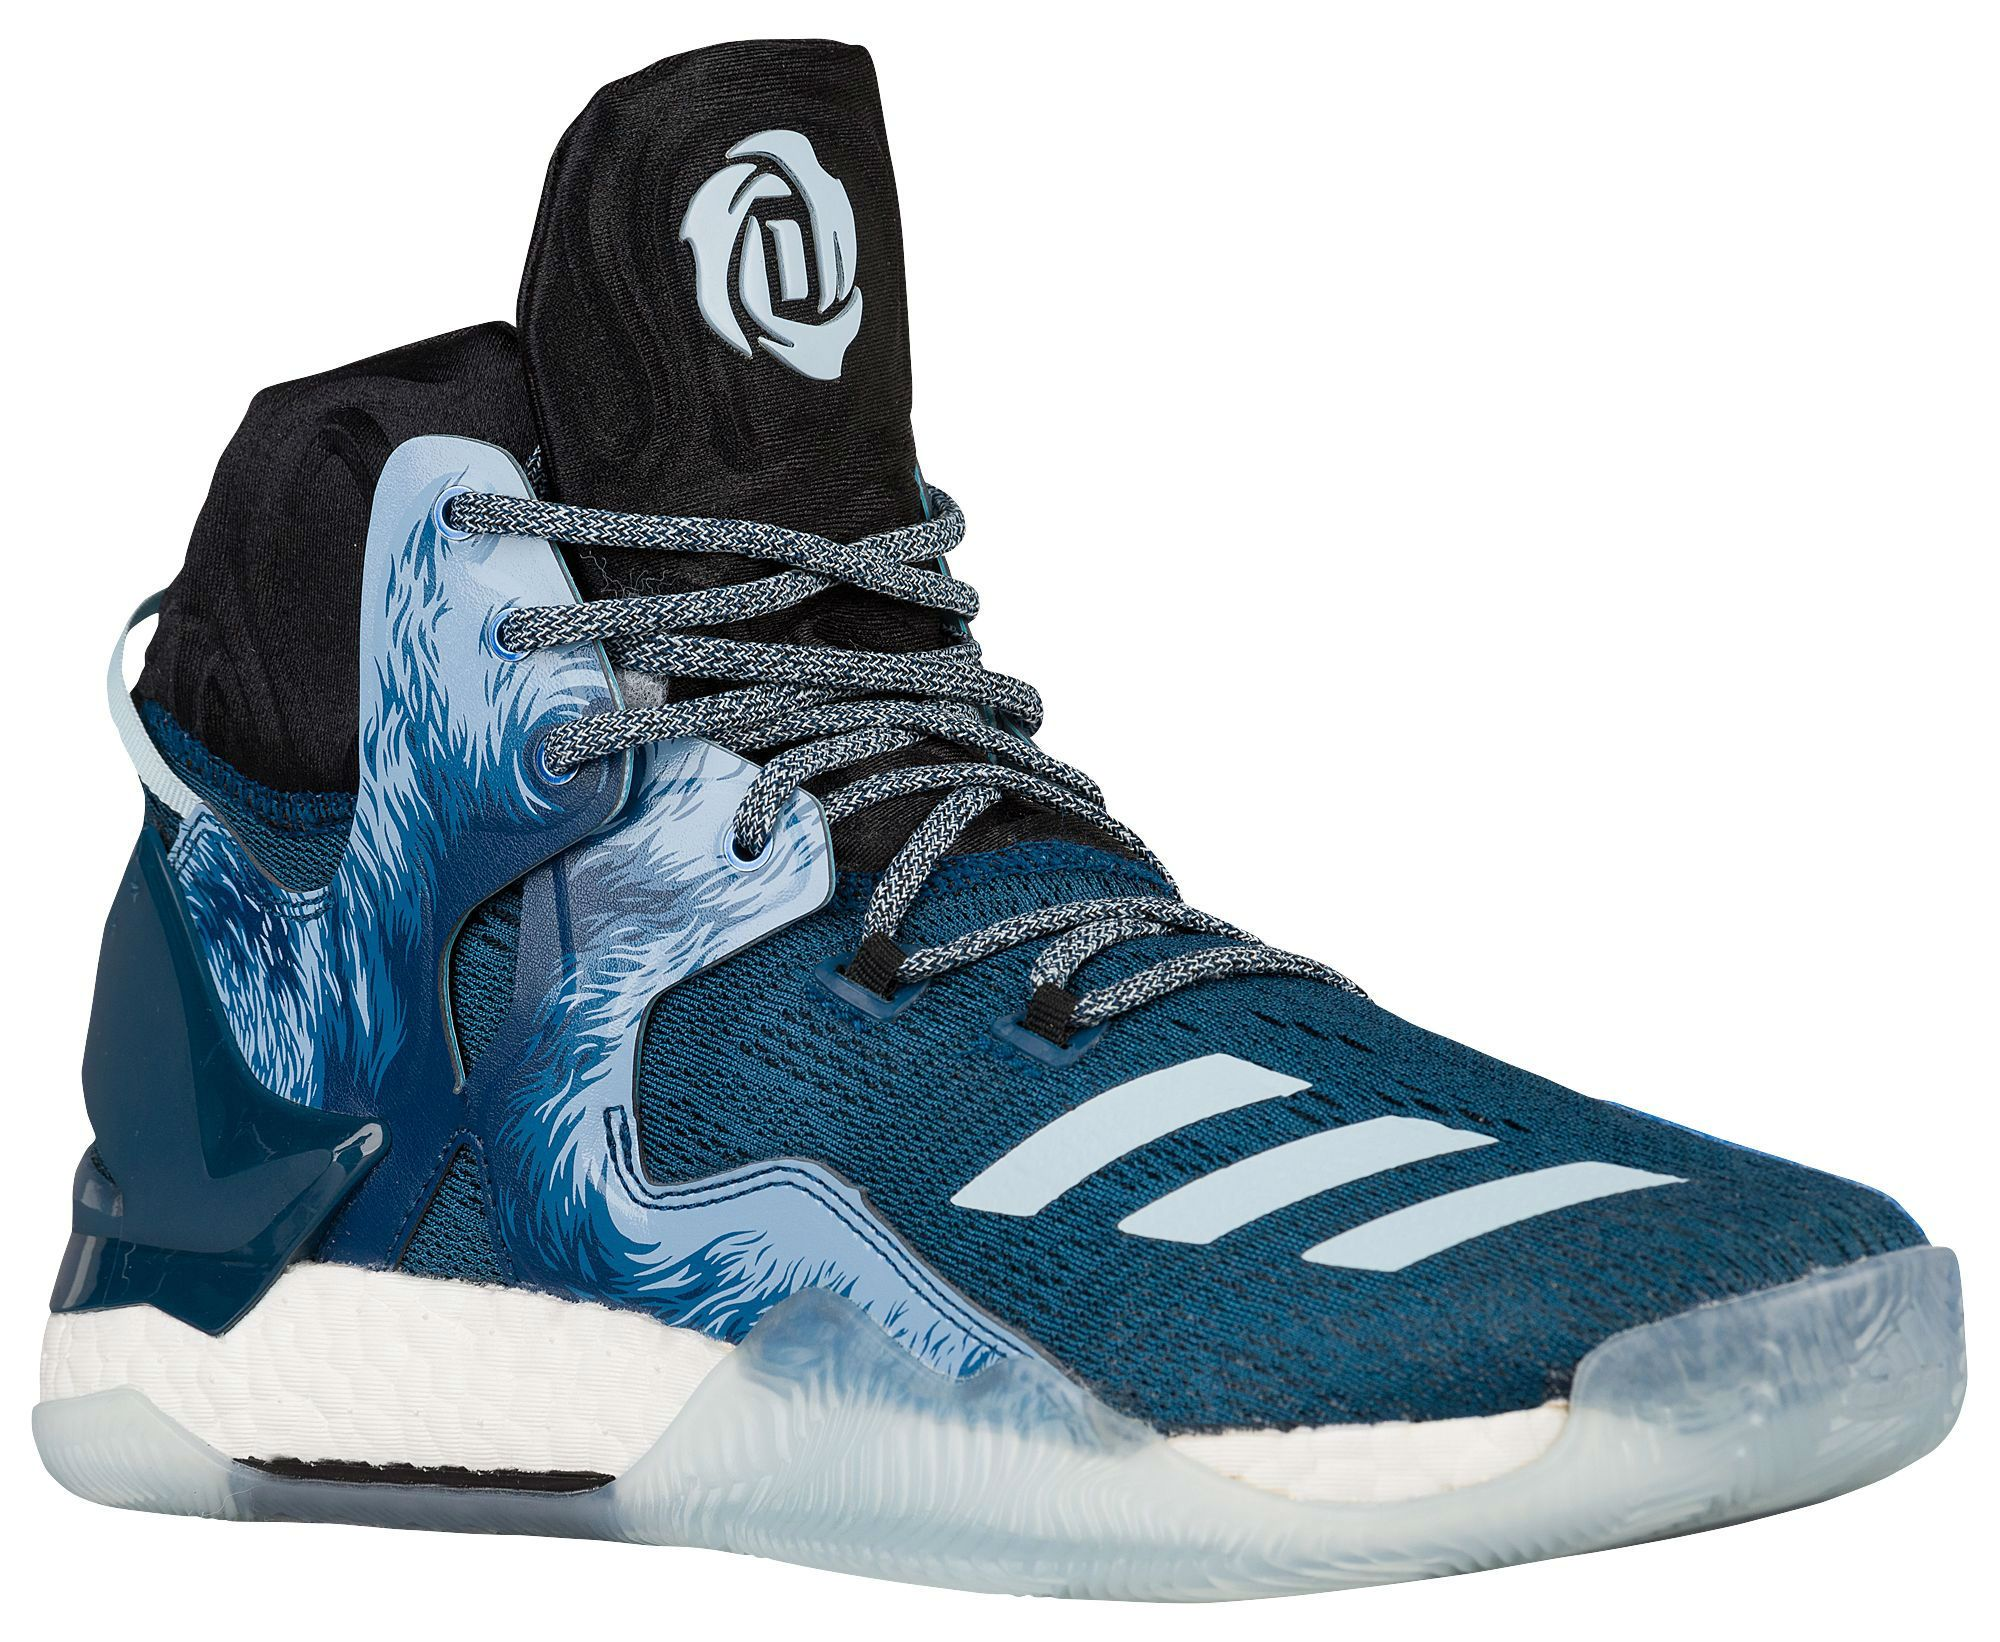 Image result for adidas d rose 7